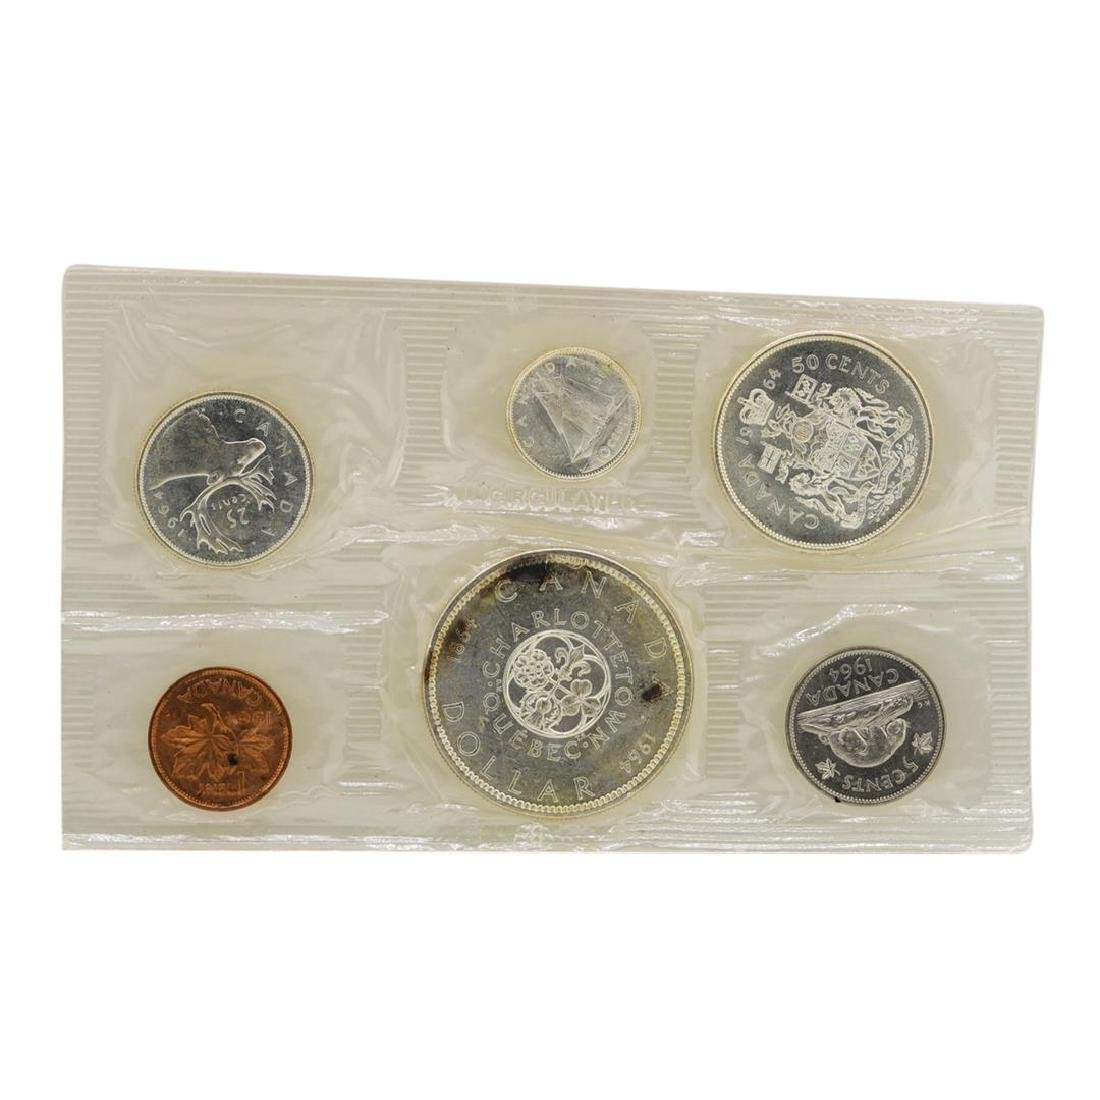 Lot of 1963-1965 Canada (6) Coin Proof Sets w/ Envelope - 5